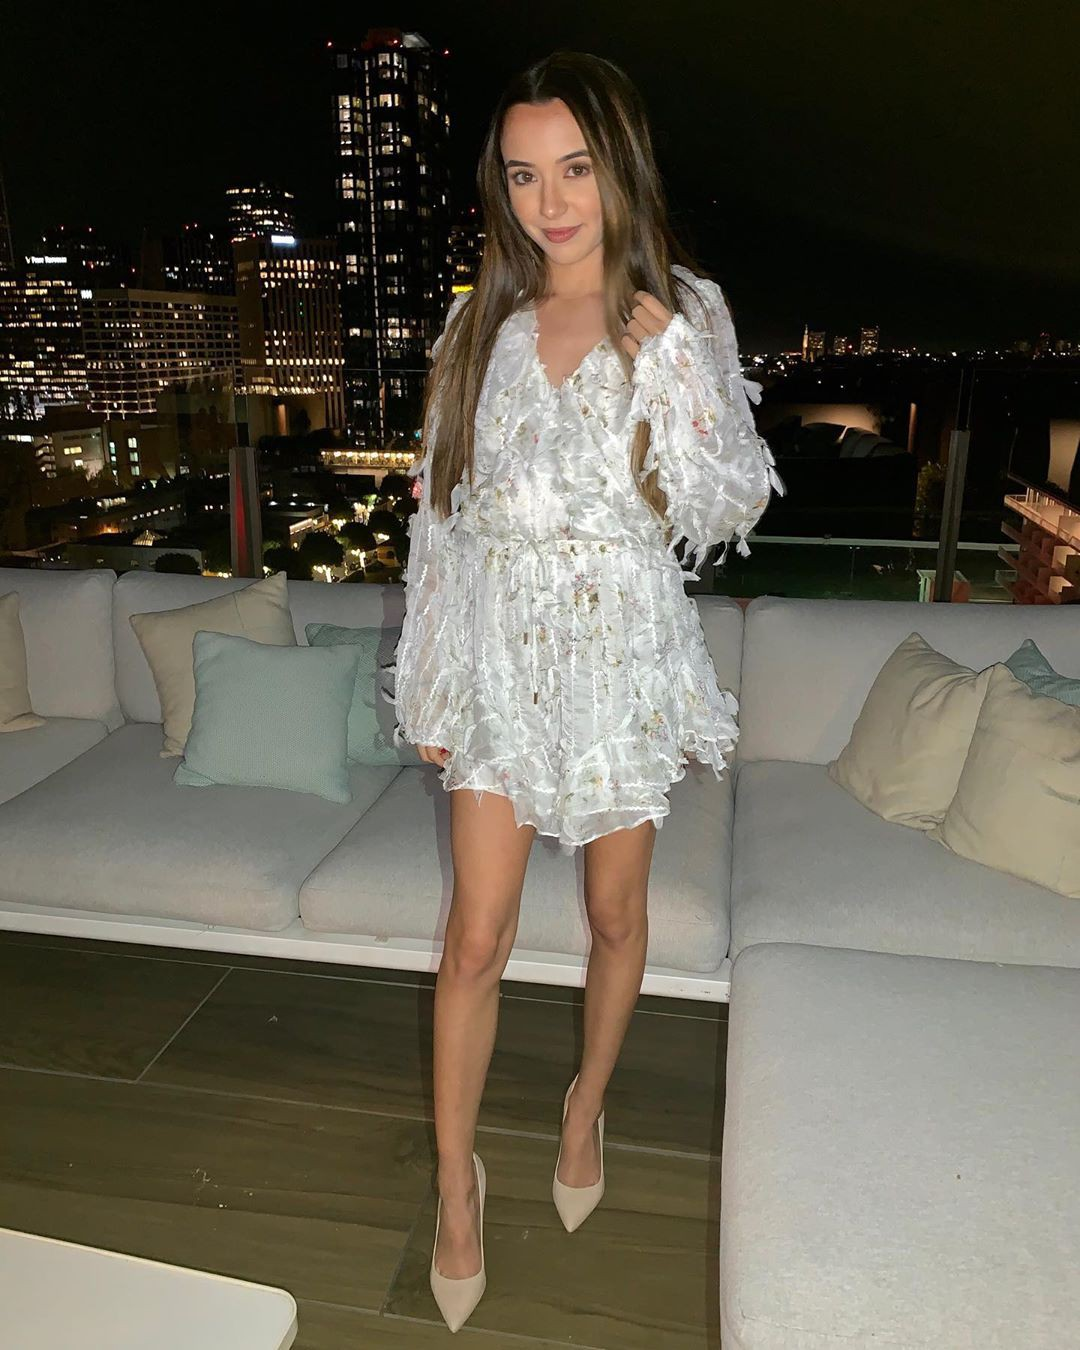 white colour combination with cocktail dress, sexy leg picture